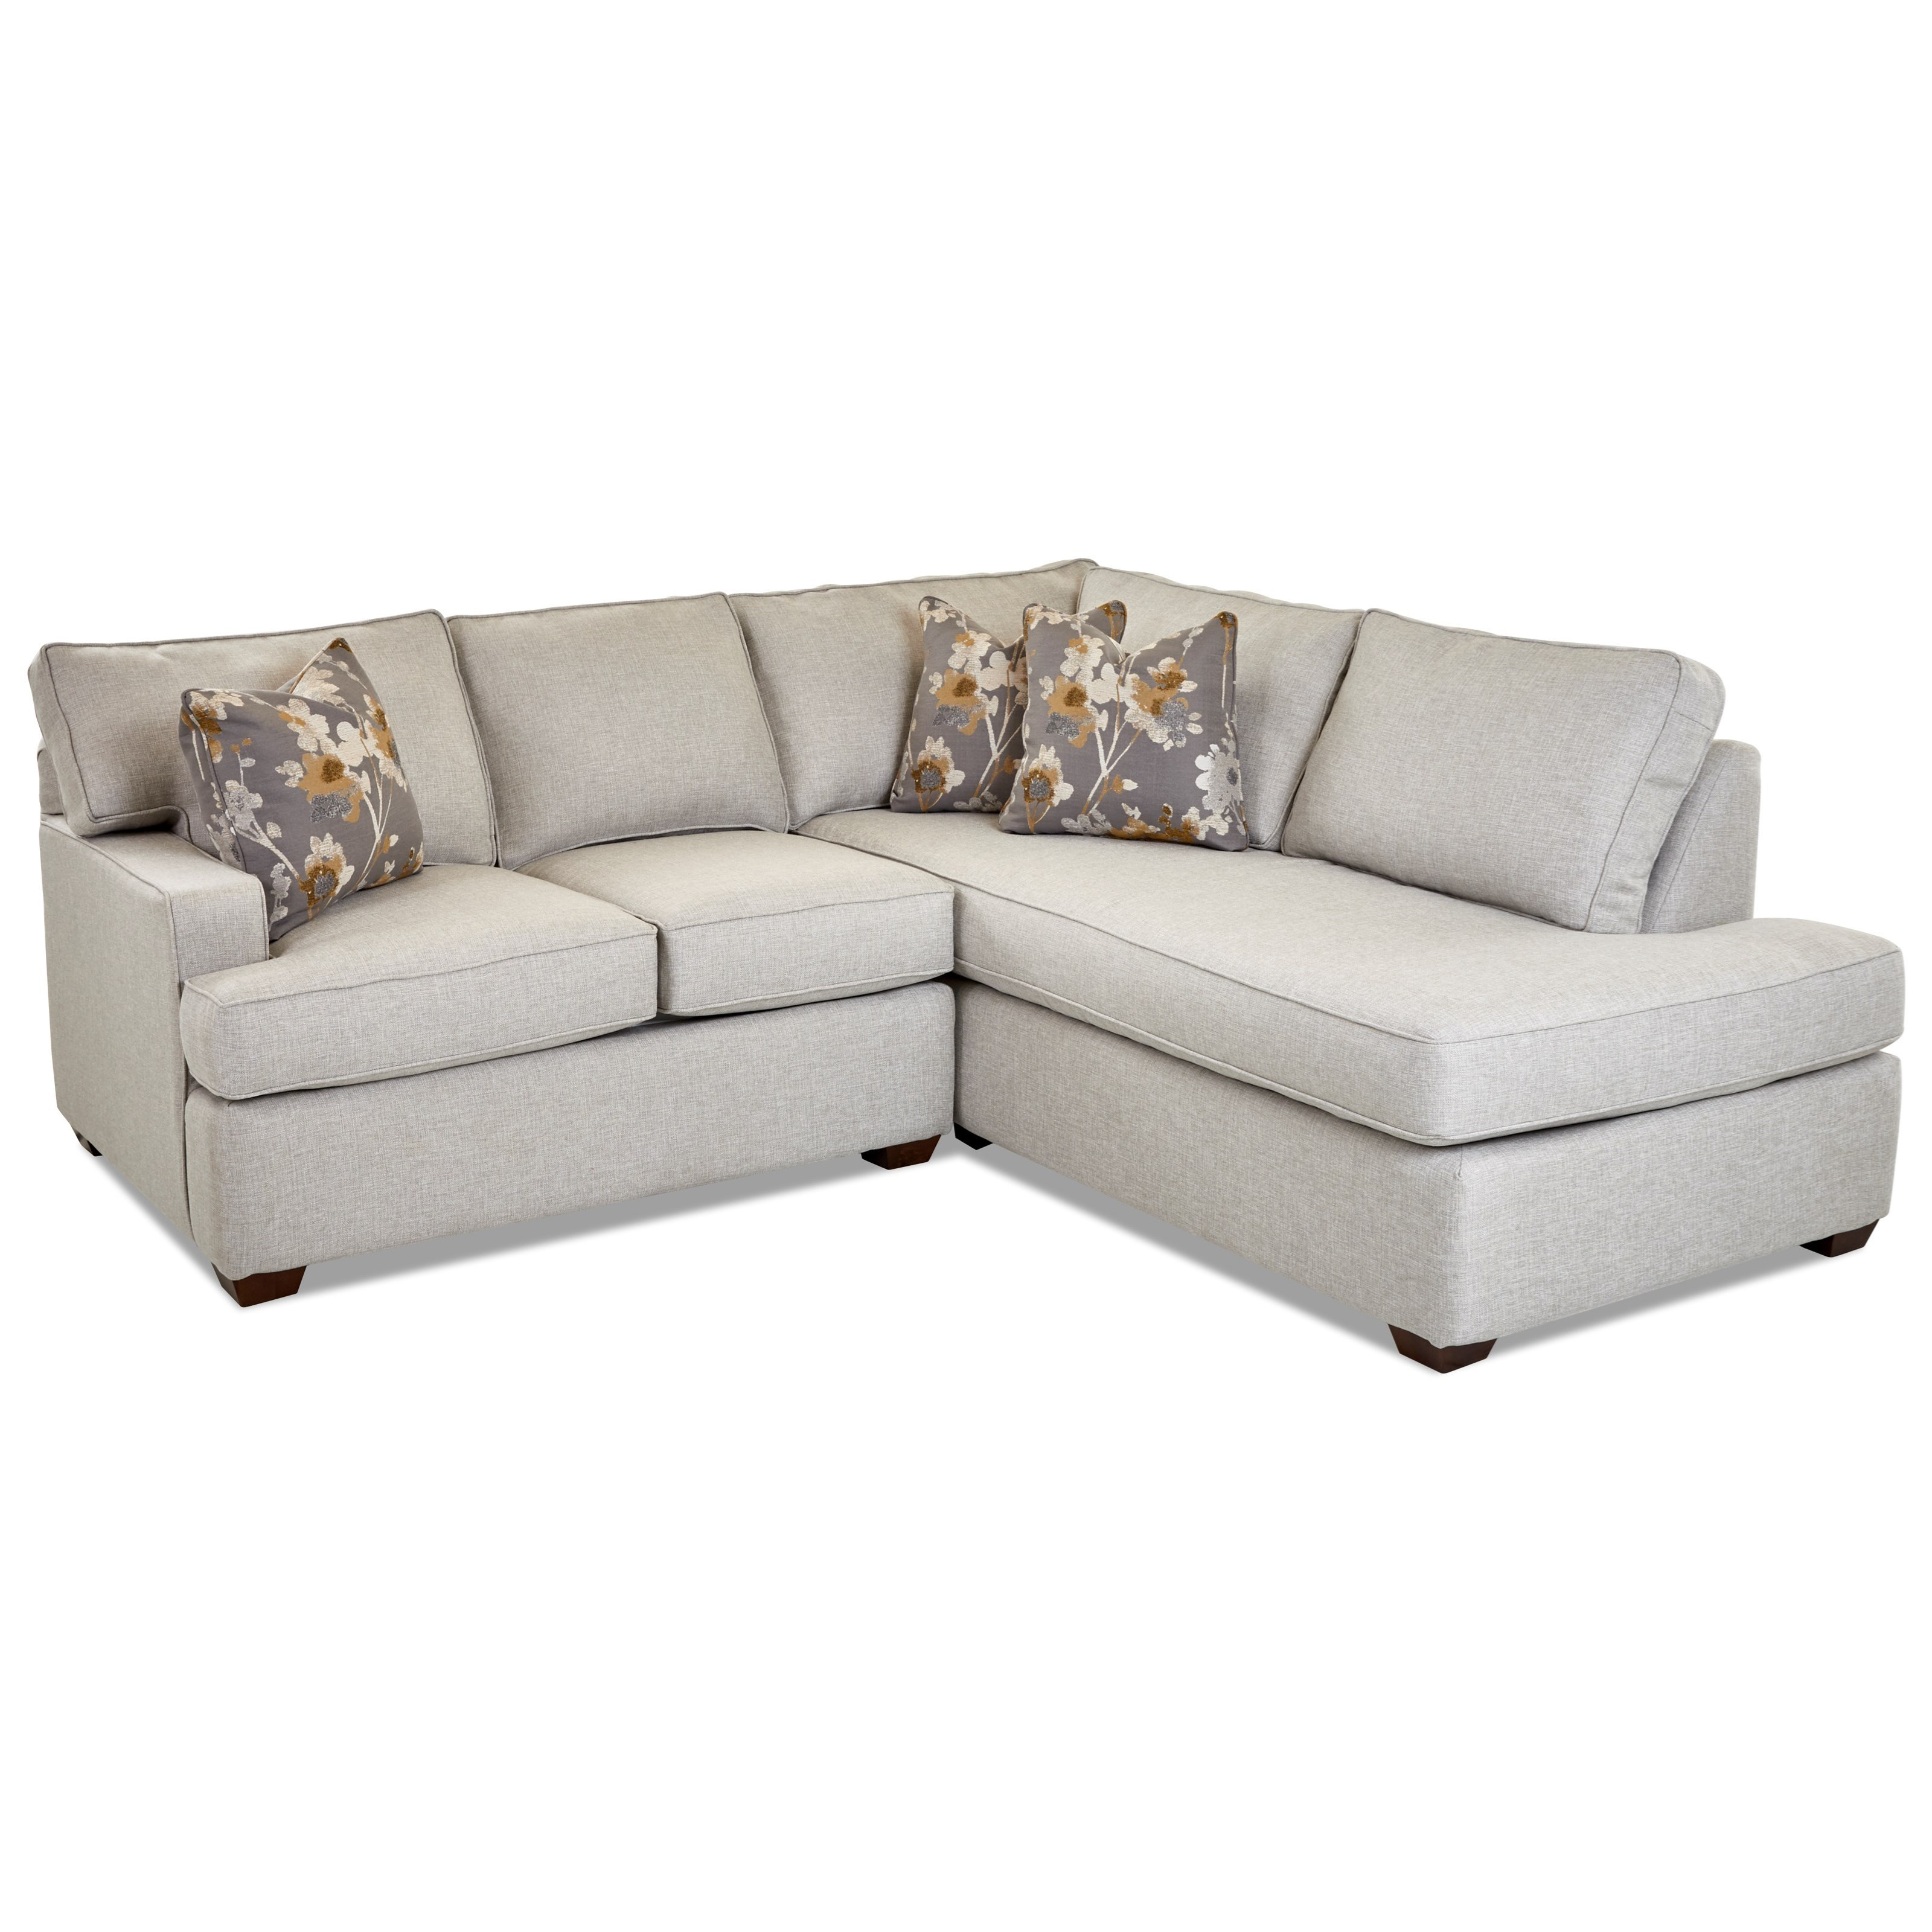 Selection 2-Piece Chaise Sofa w/ RAF Chaise by Klaussner at Northeast Factory Direct